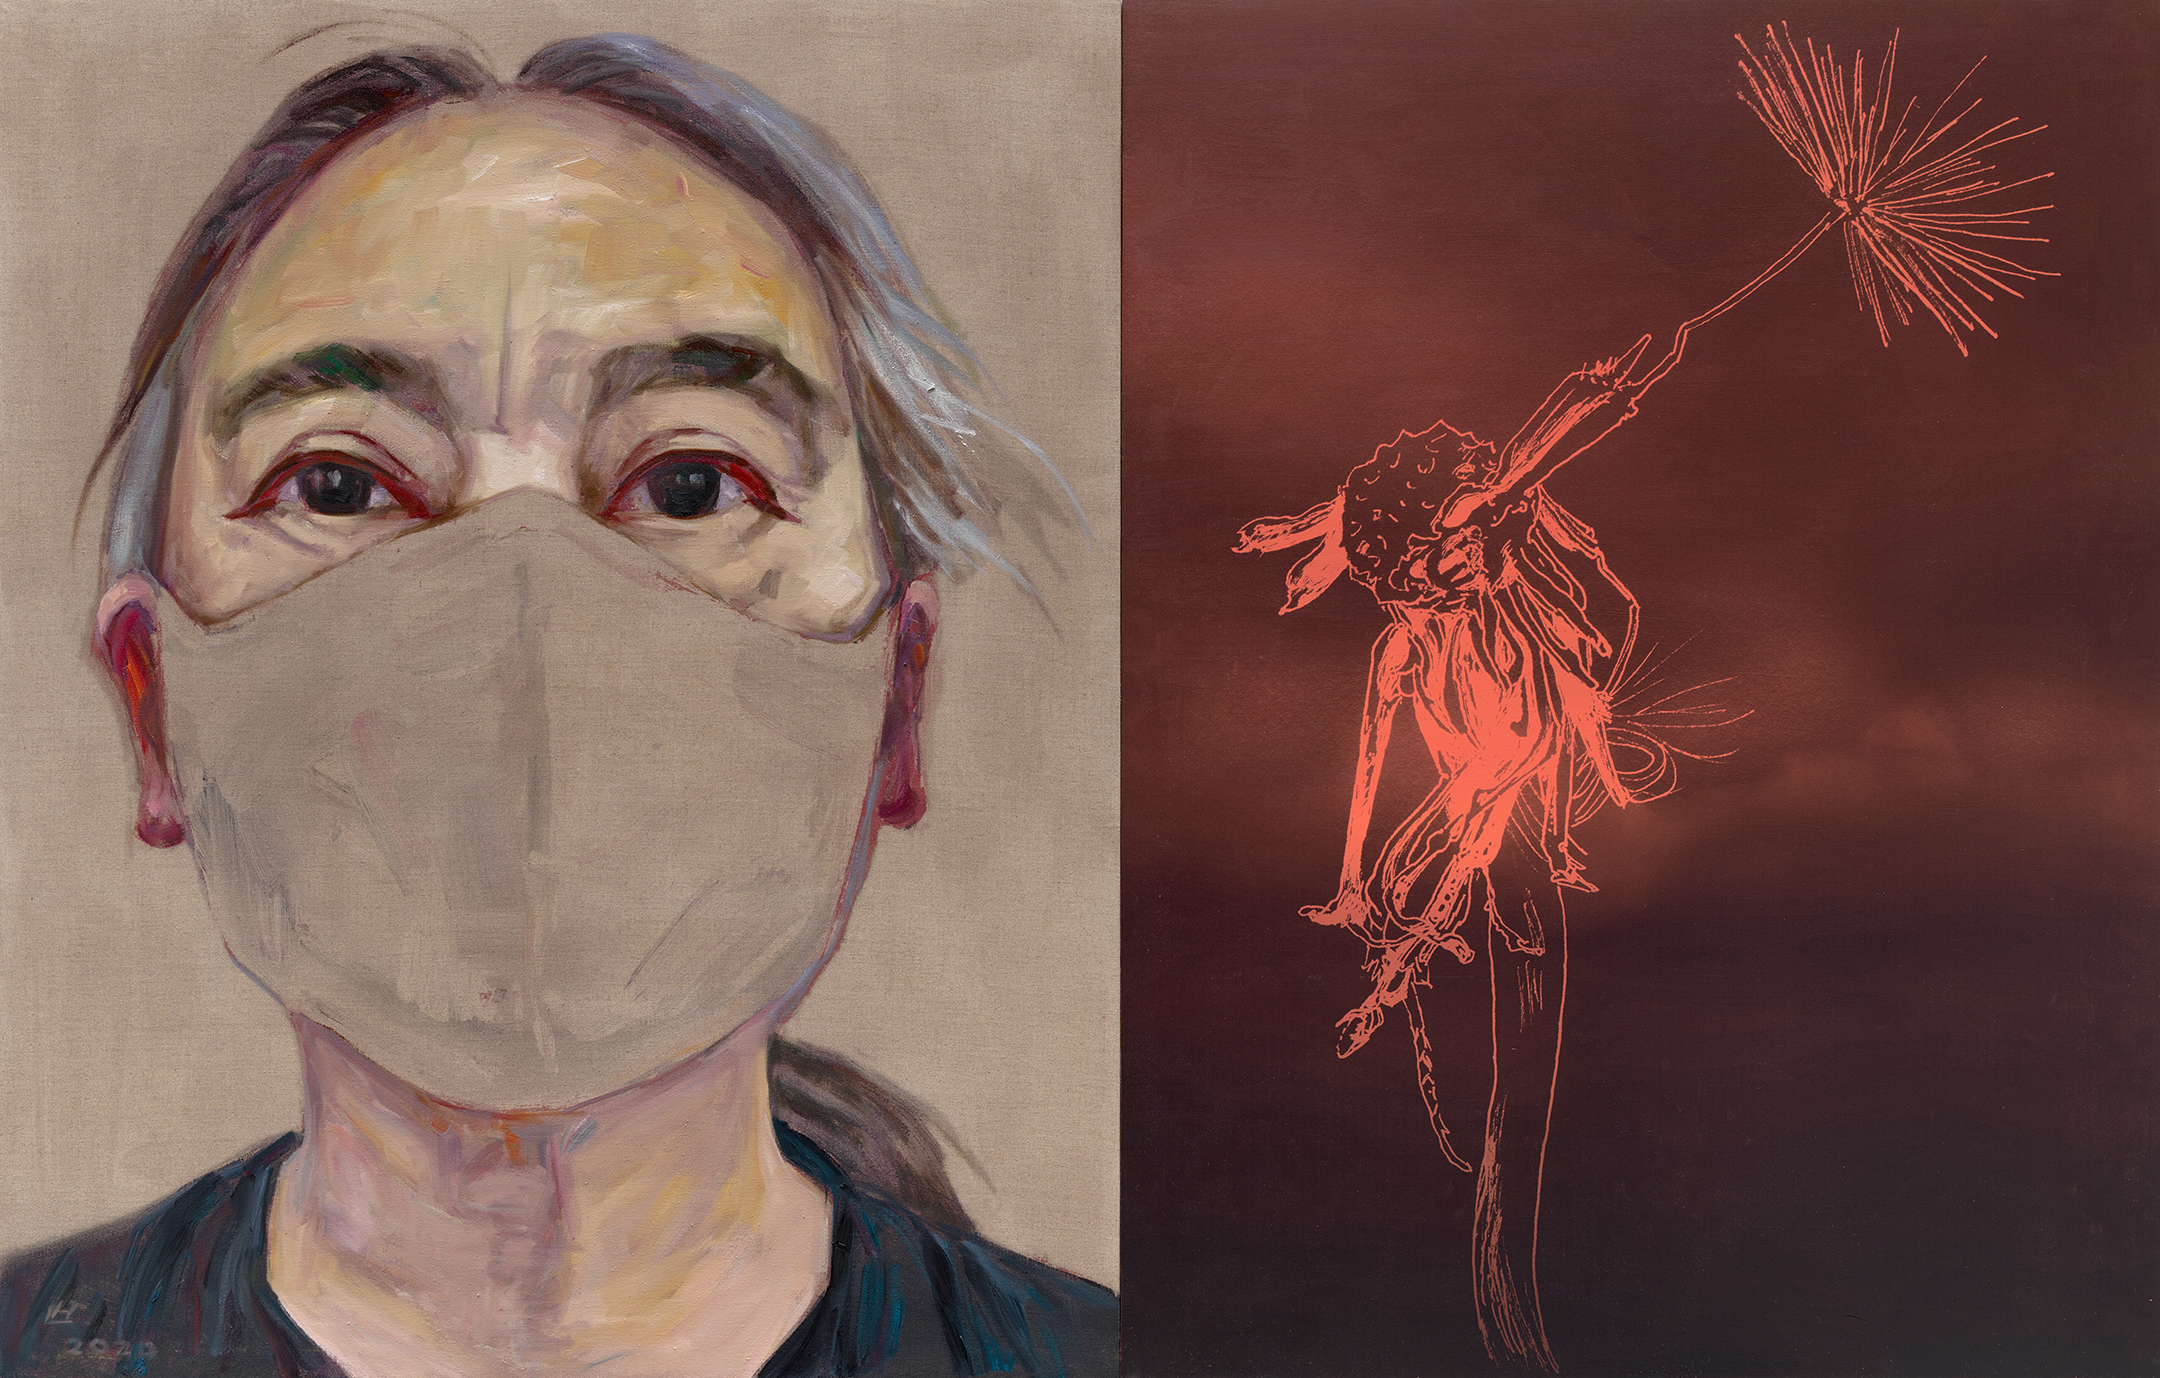 Self-portrait by artist Hung Liu with mask and dandelion